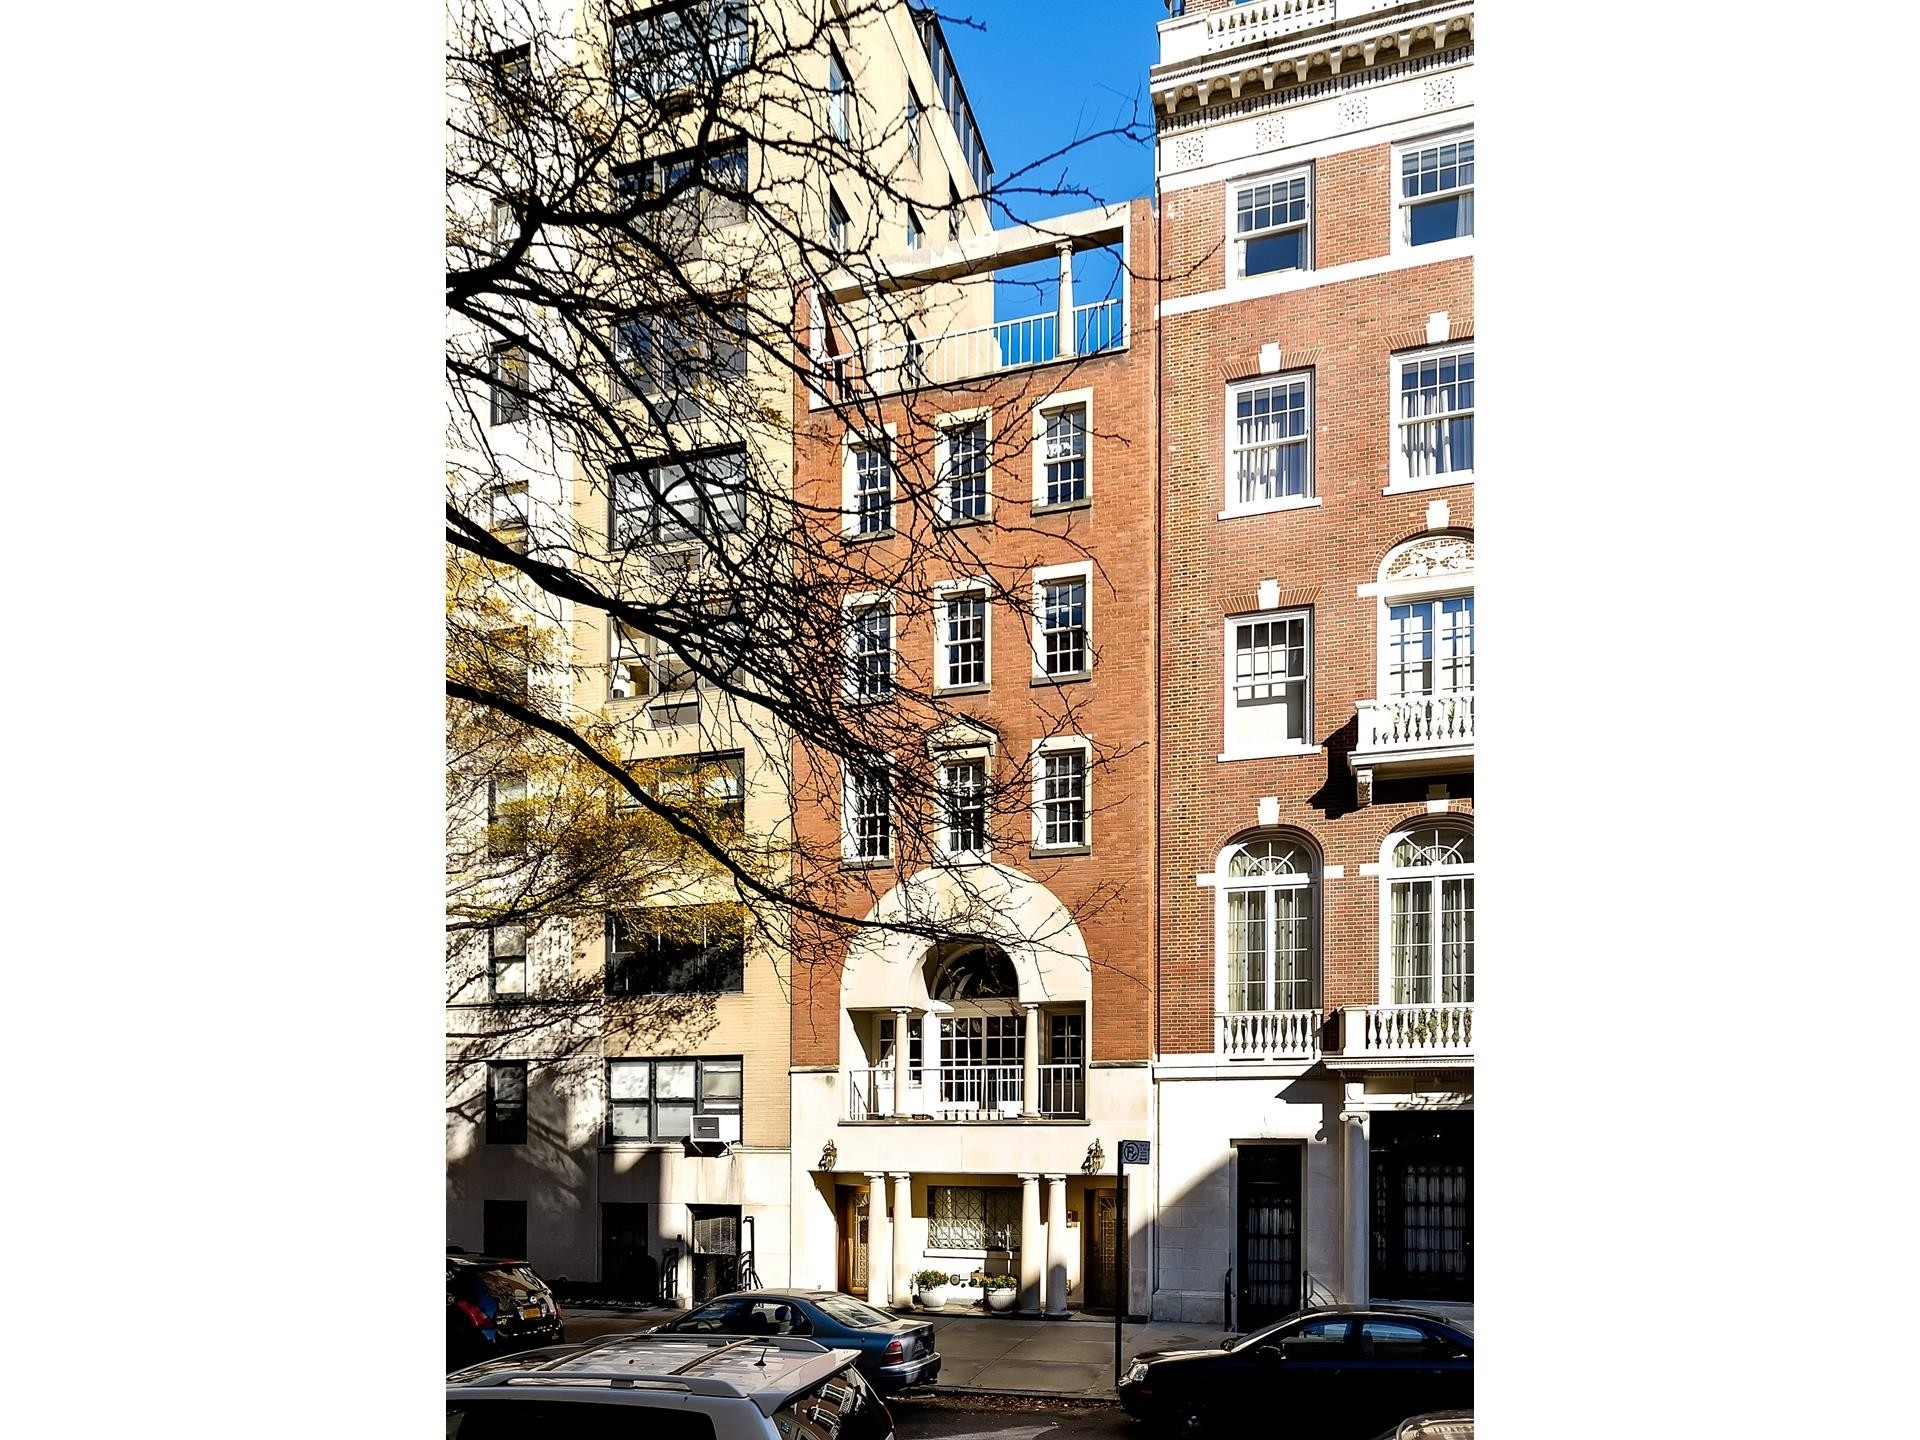 Single Family Townhouse for Sale at Lenox Hill, New York, NY 10021